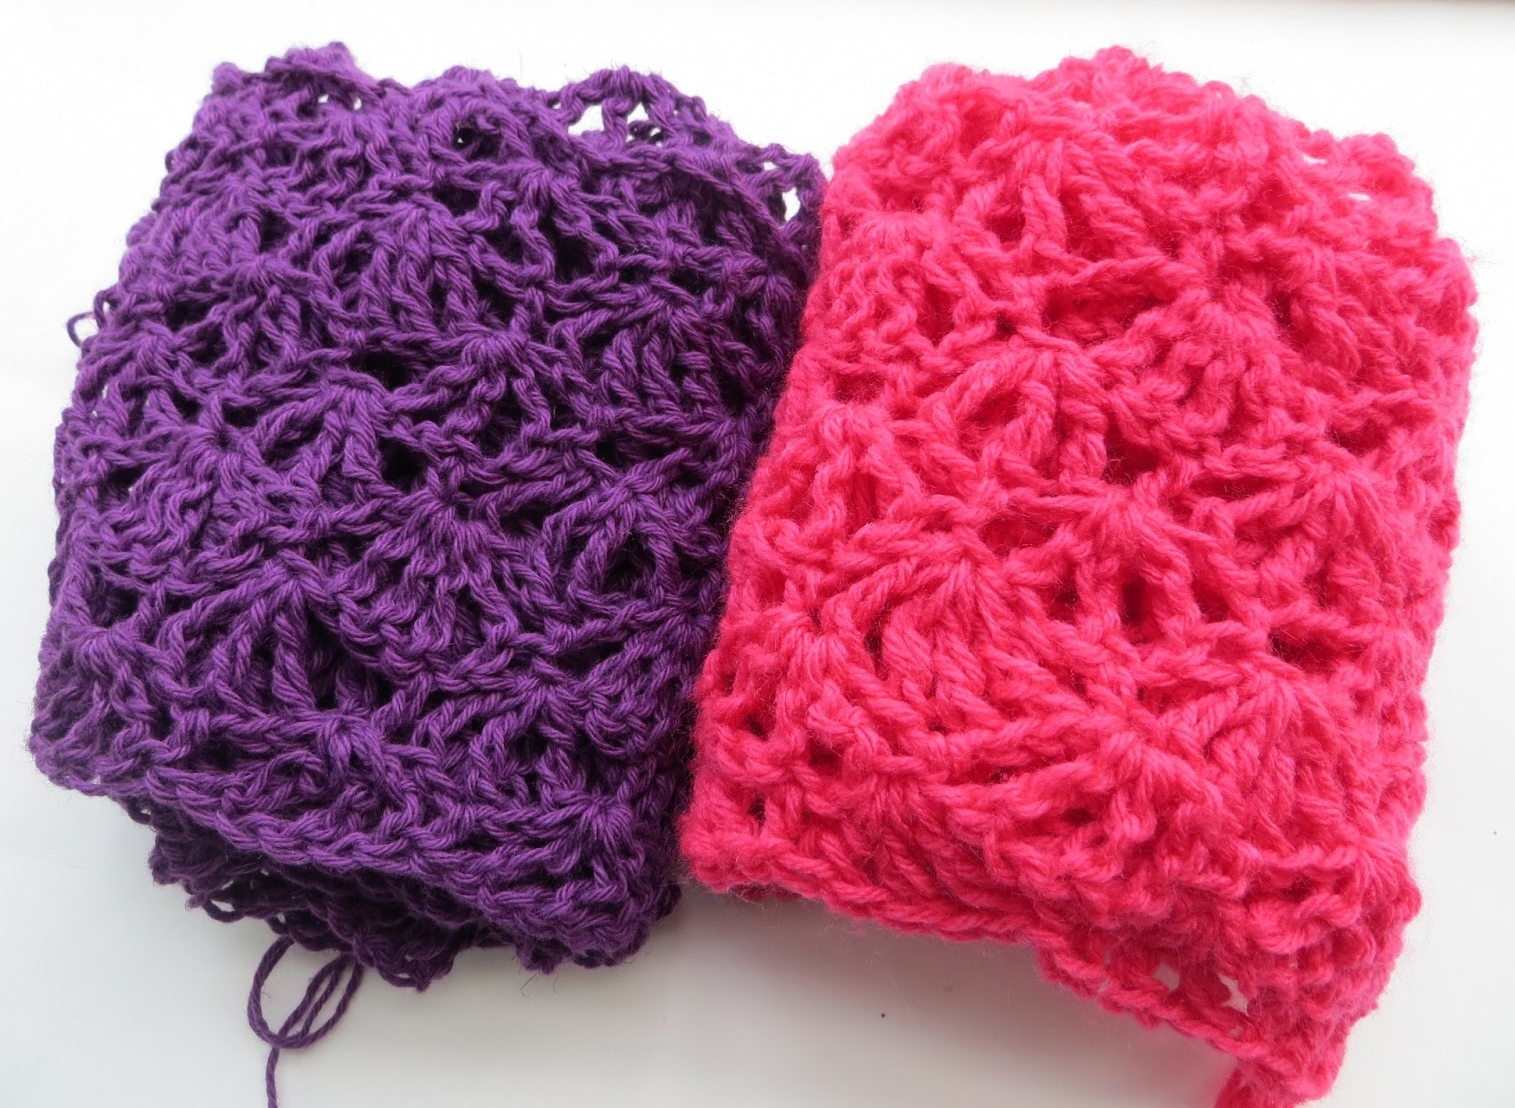 Crochet Patterns Videos Free : Crochet Dreamz: Alana Lacy Scarf, Free Crochet Pattern